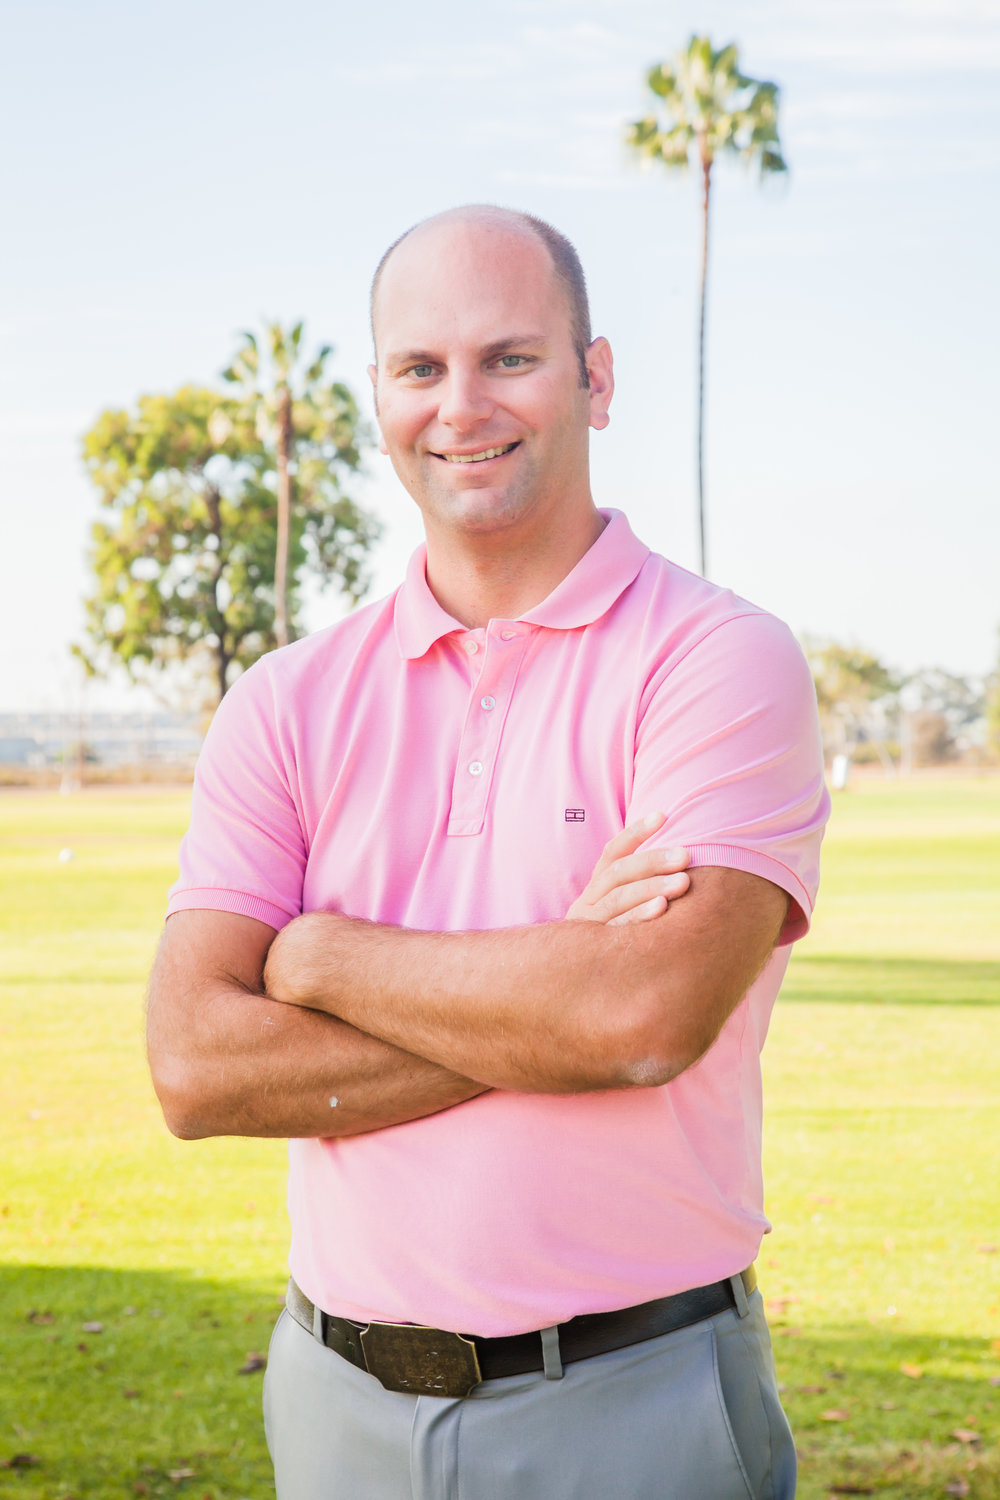 golf-instructor-san-diego-headshot-head-shot